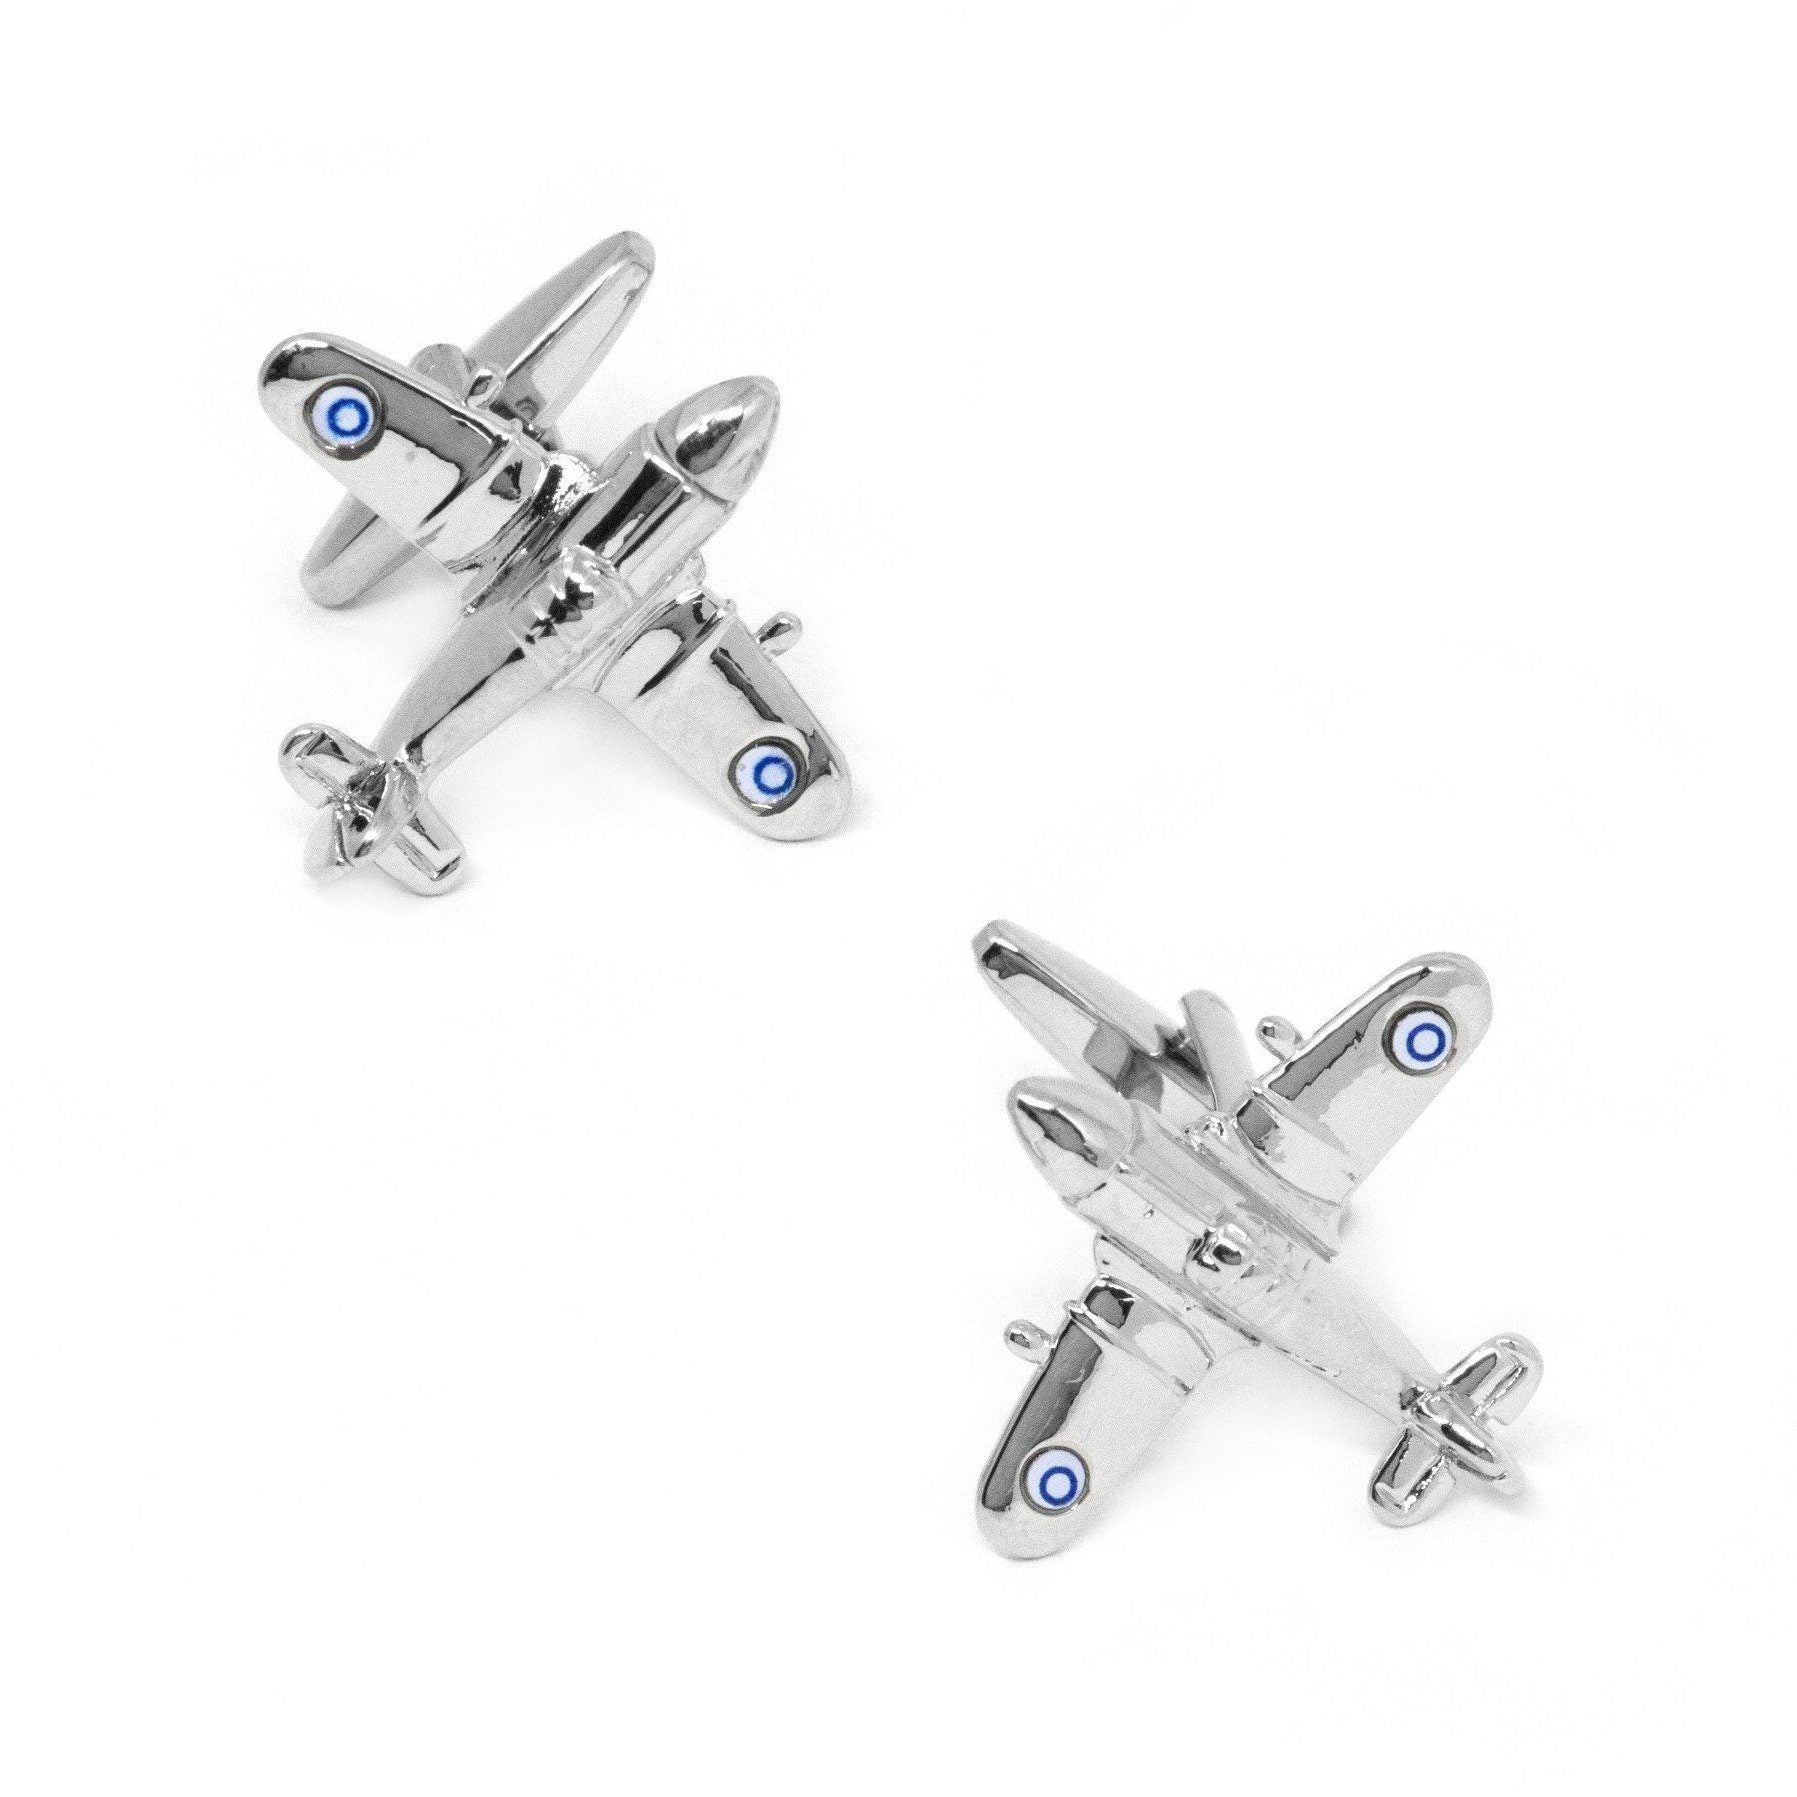 Silver Fighter Jet Plane Cufflinks Clinks Australia